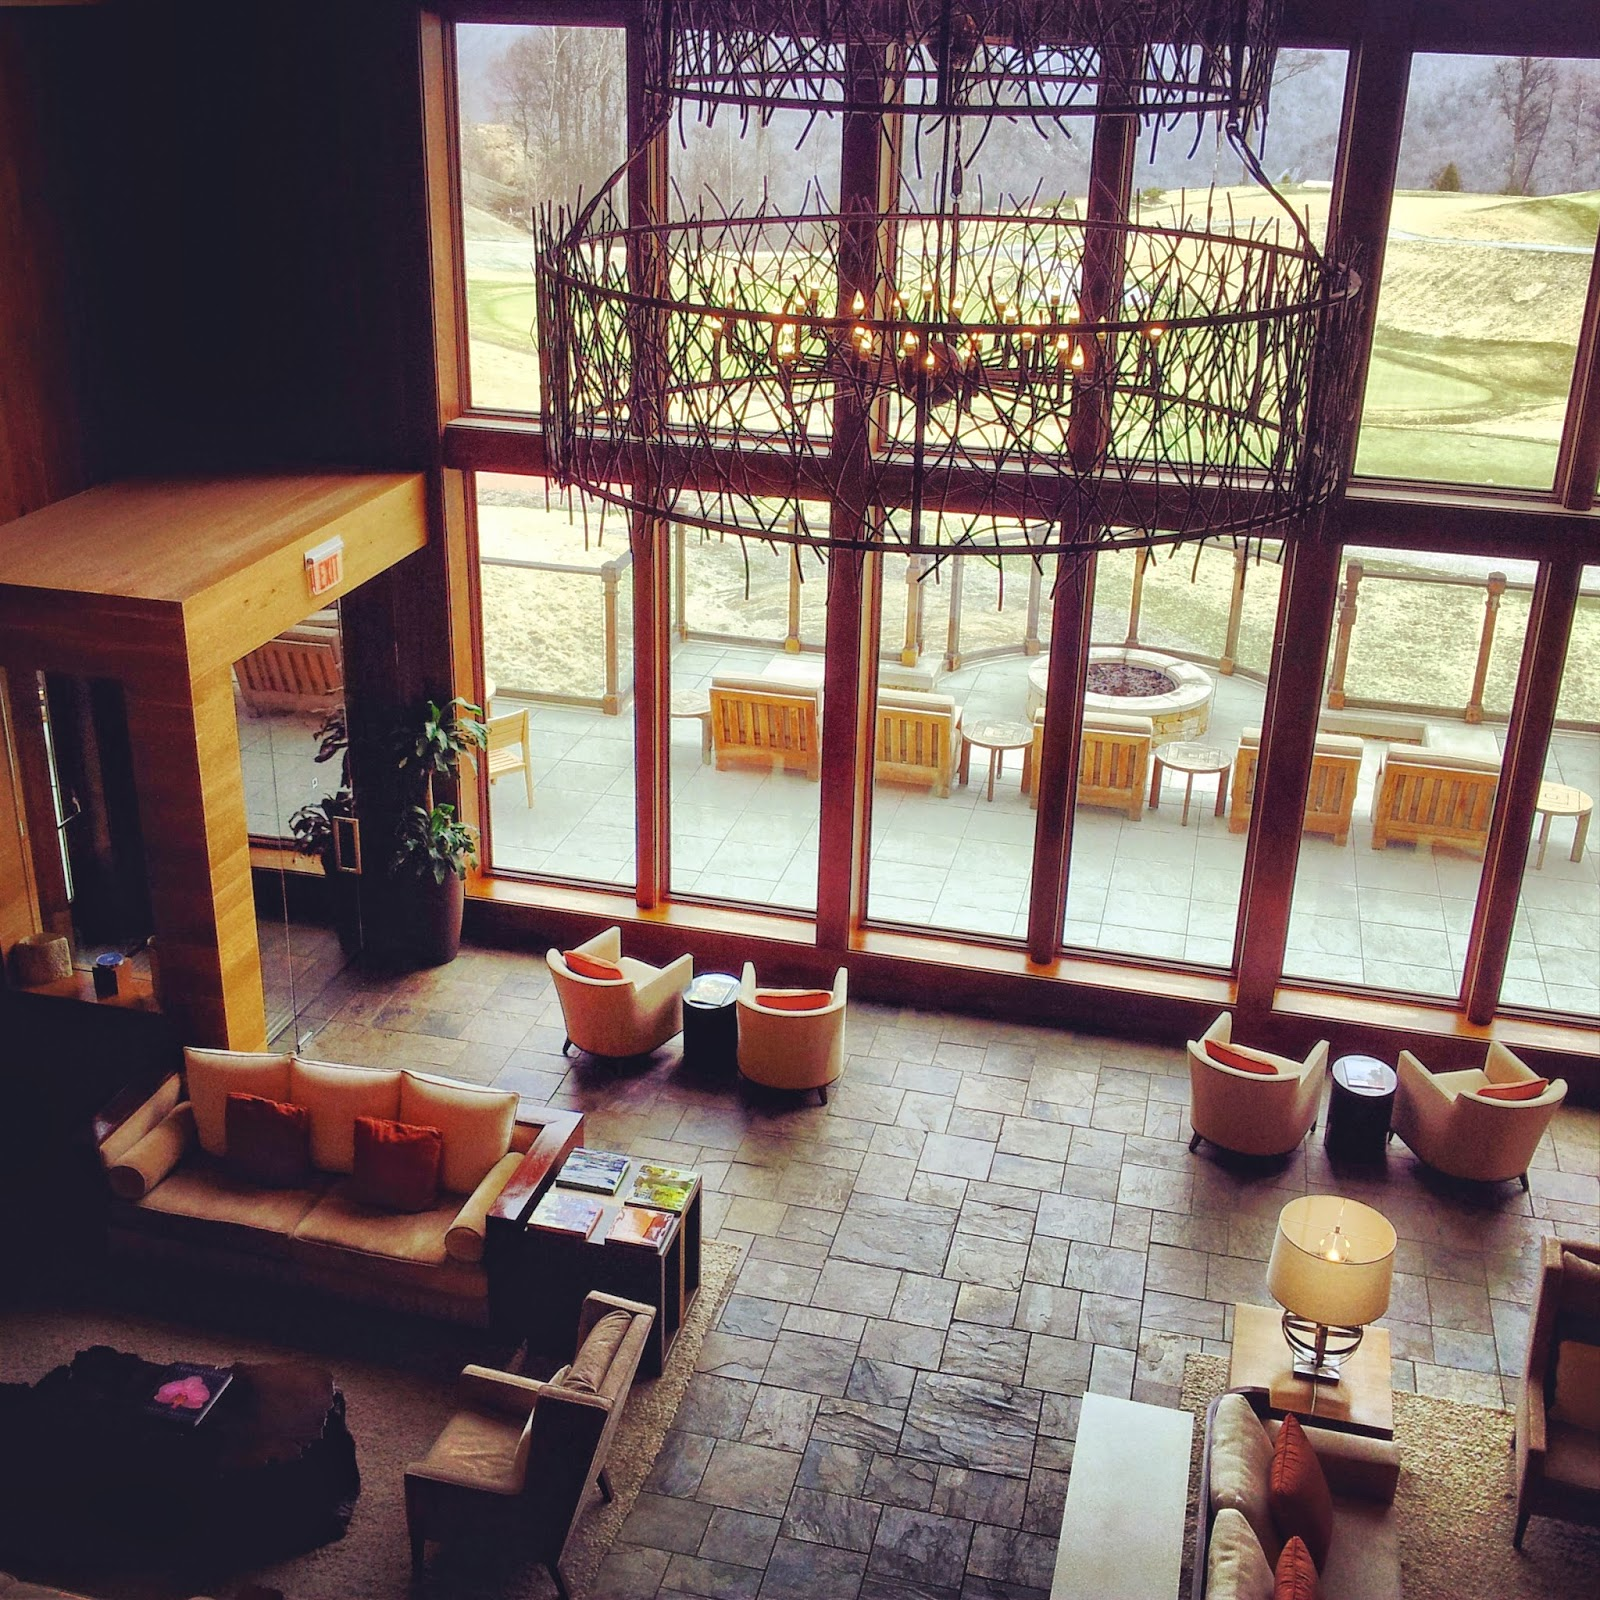 The Best of 2014 in Food and Travel: Primland Resort